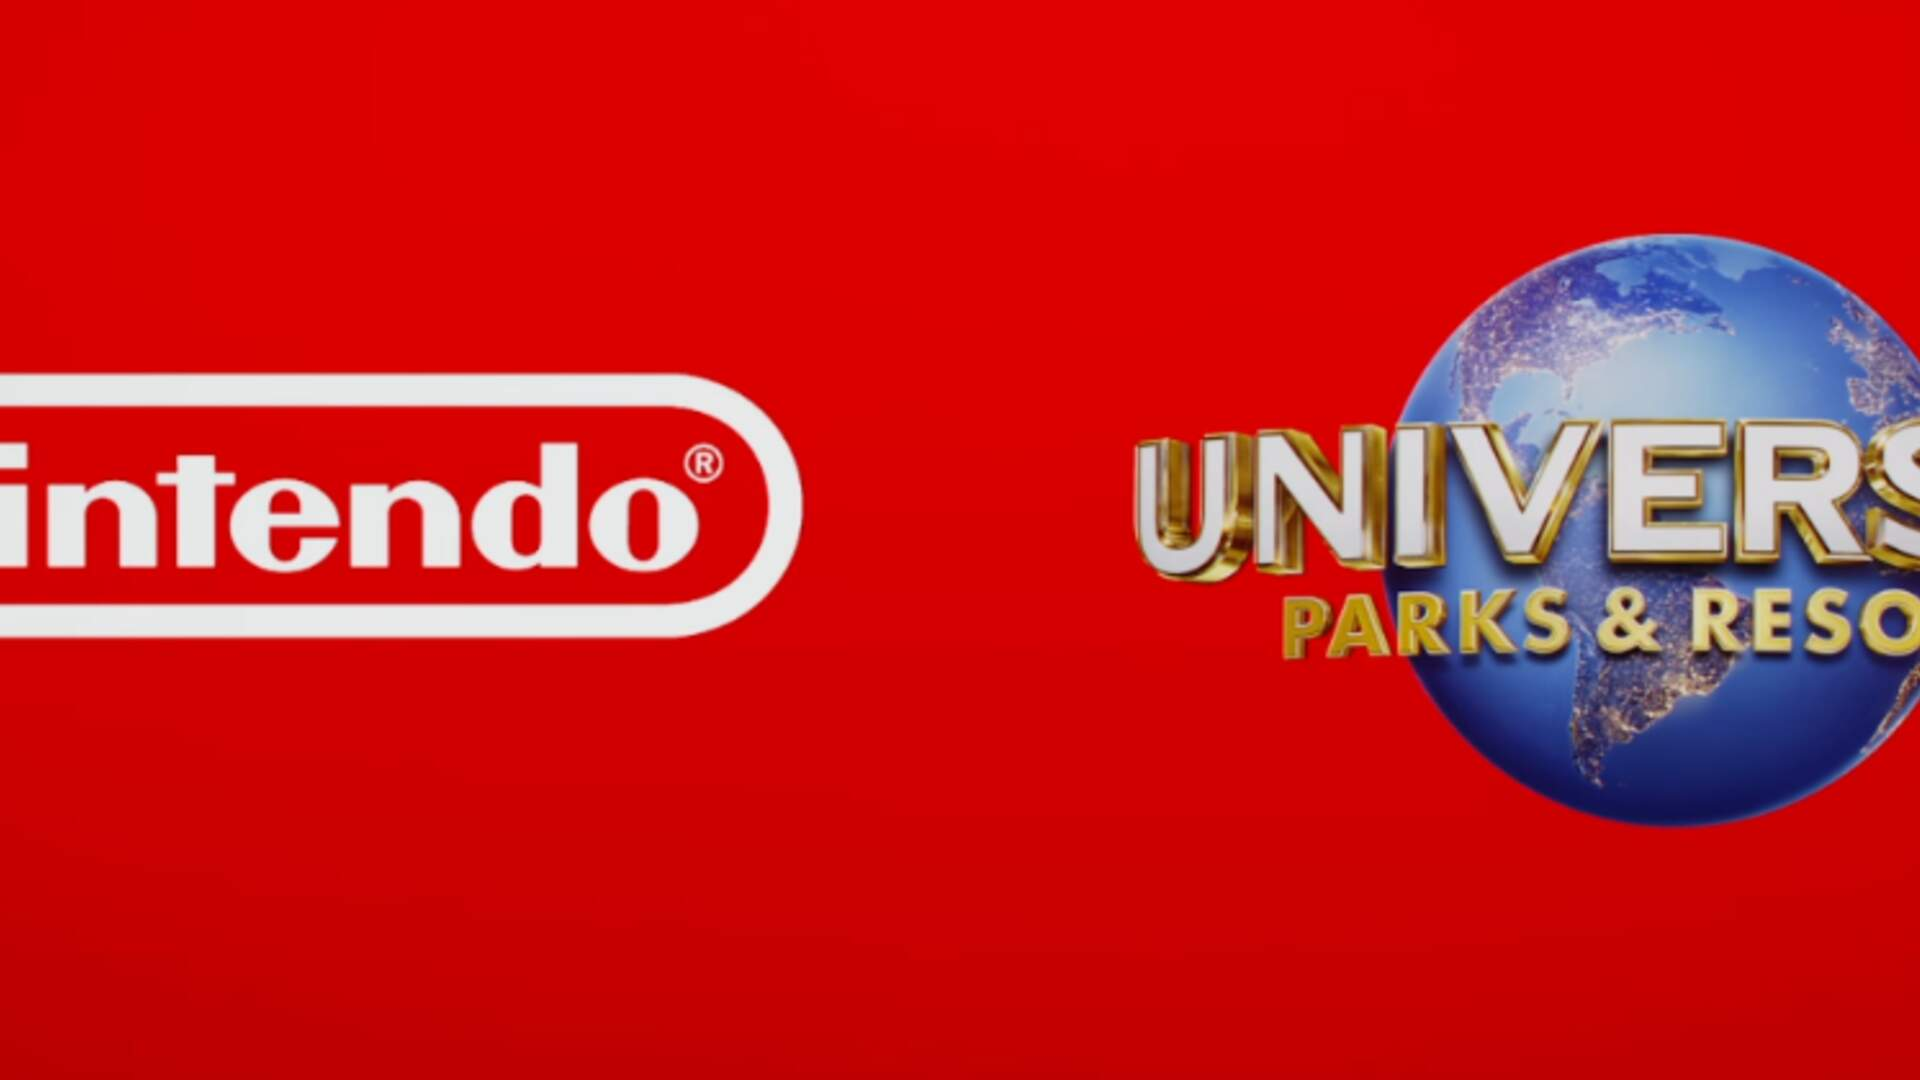 Nintendo Bringing Its Brand of Fun to Universal Parks & Resorts